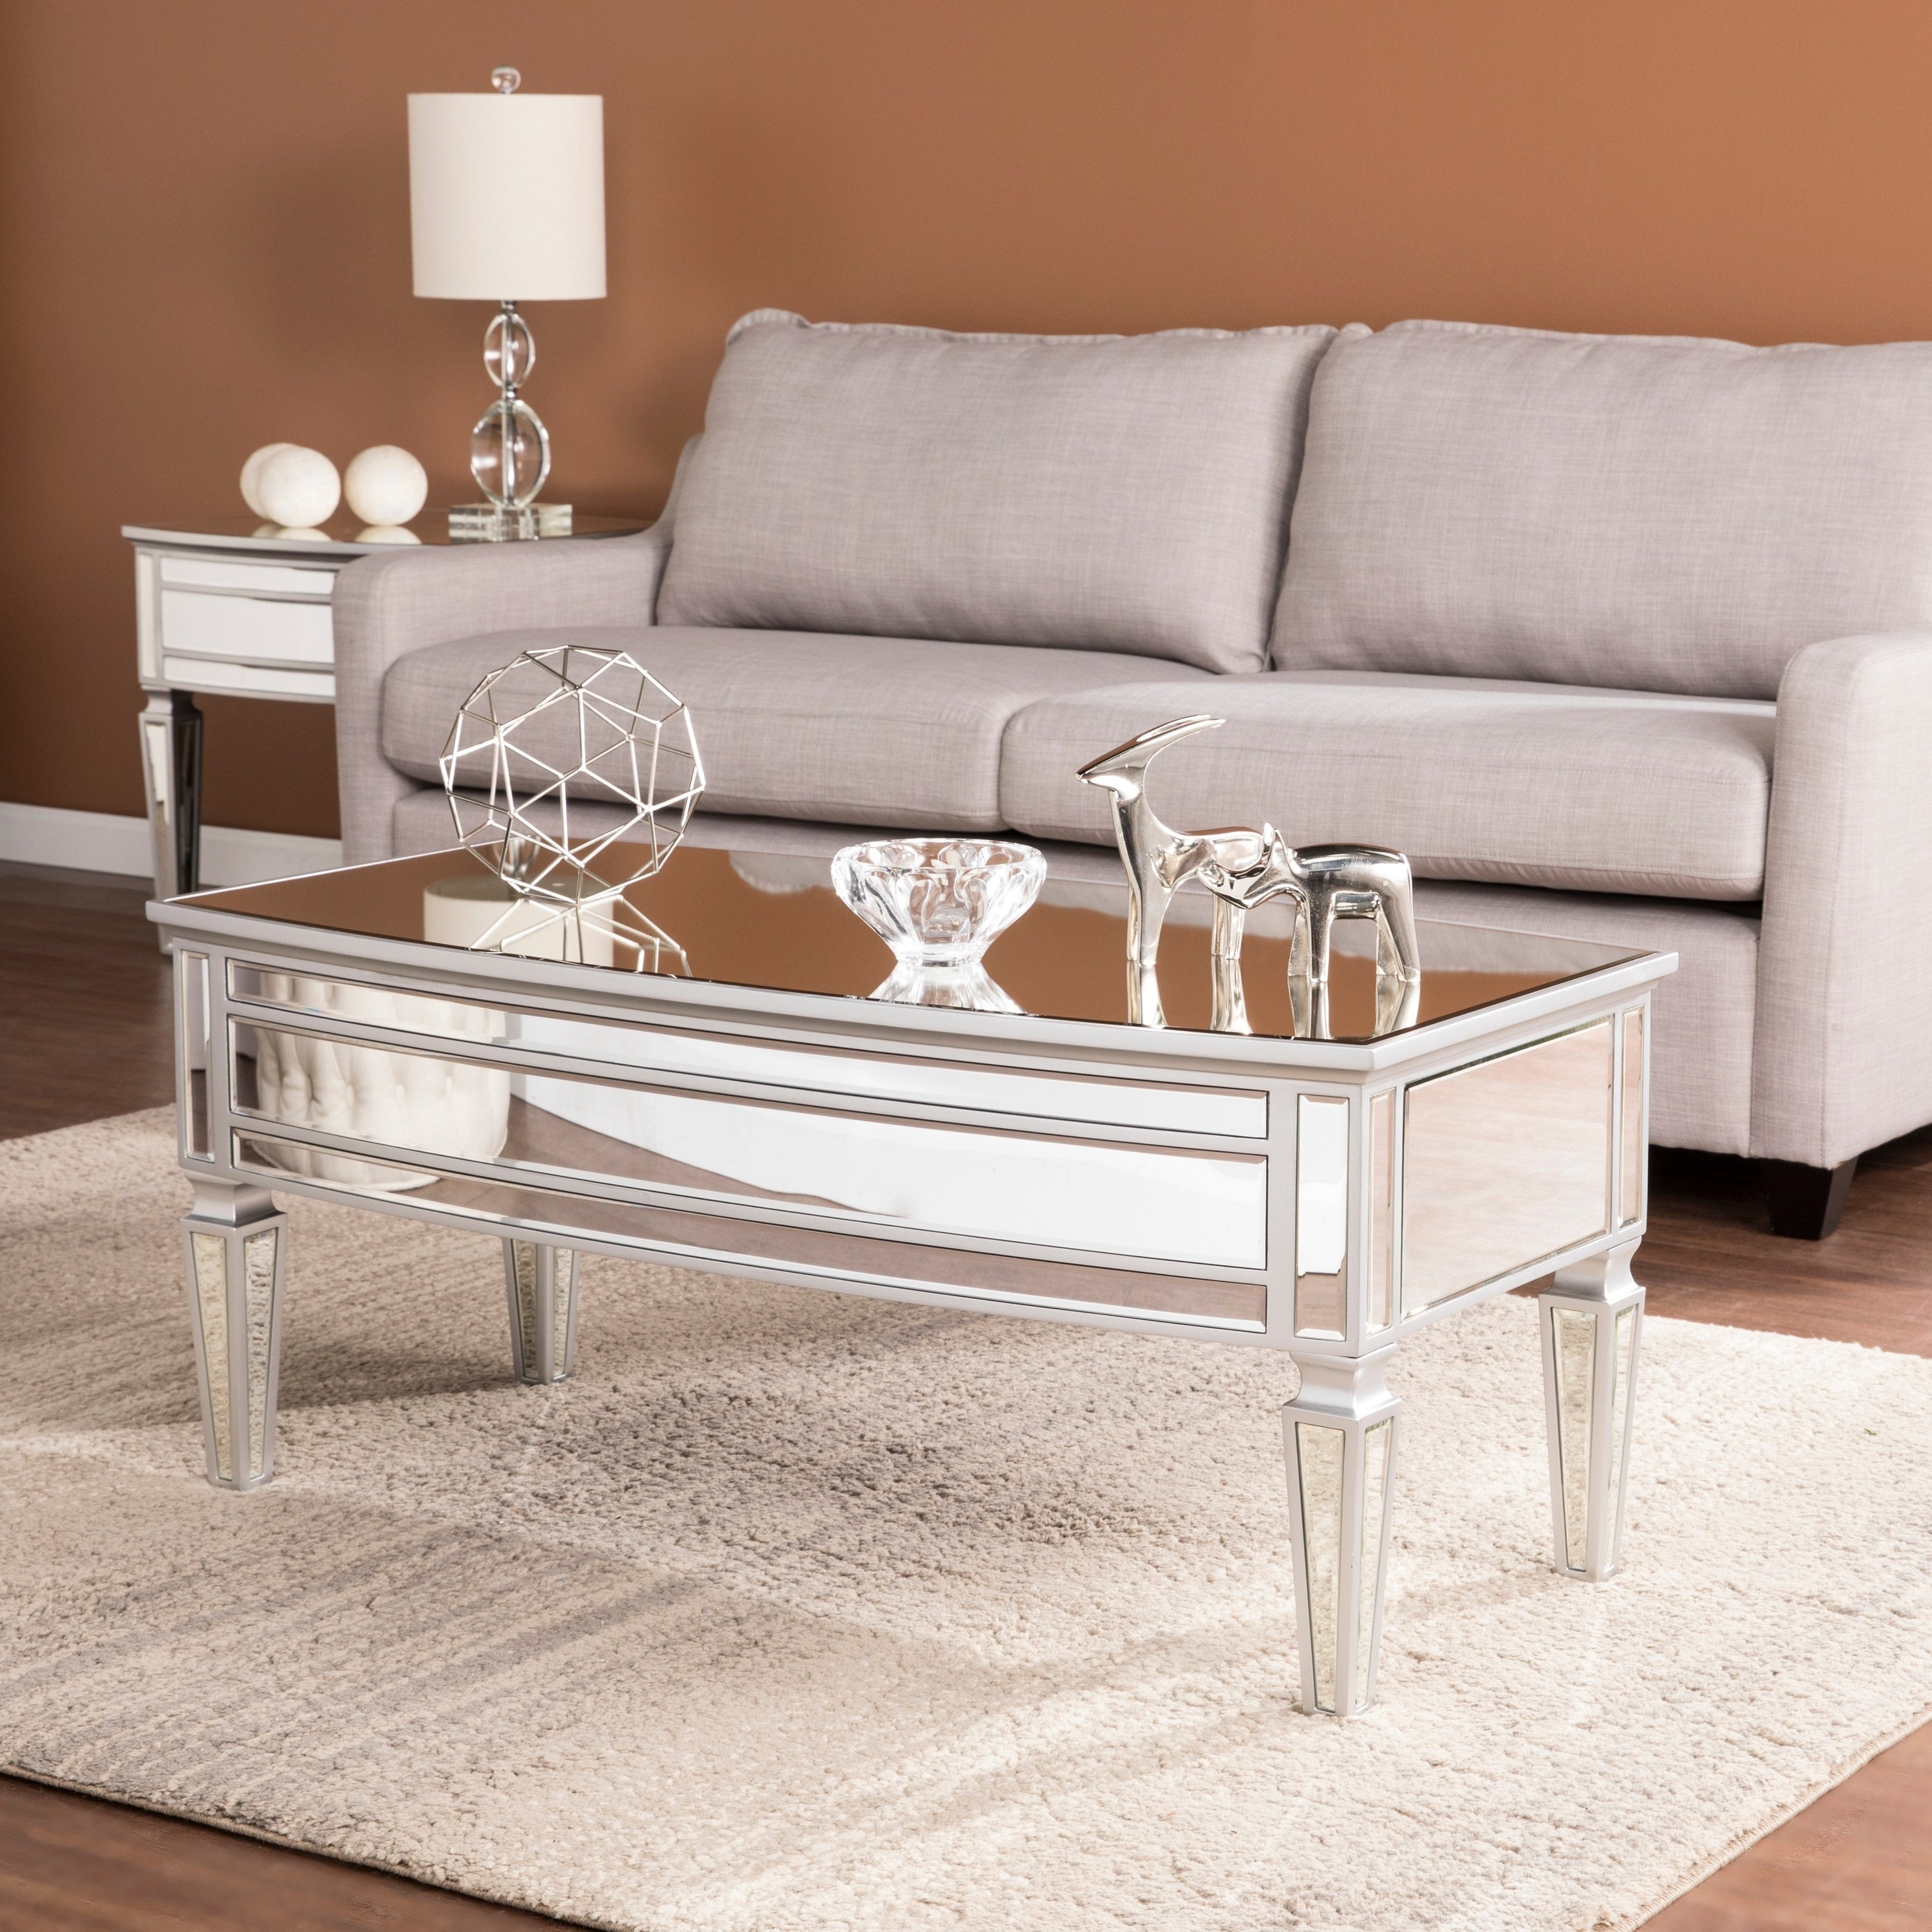 Shop Silver Orchid Olivia Silver Mirrored Glam Cocktail With Preferred Silver Orchid Olivia Mirrored Coffee Cocktail Tables (View 11 of 20)